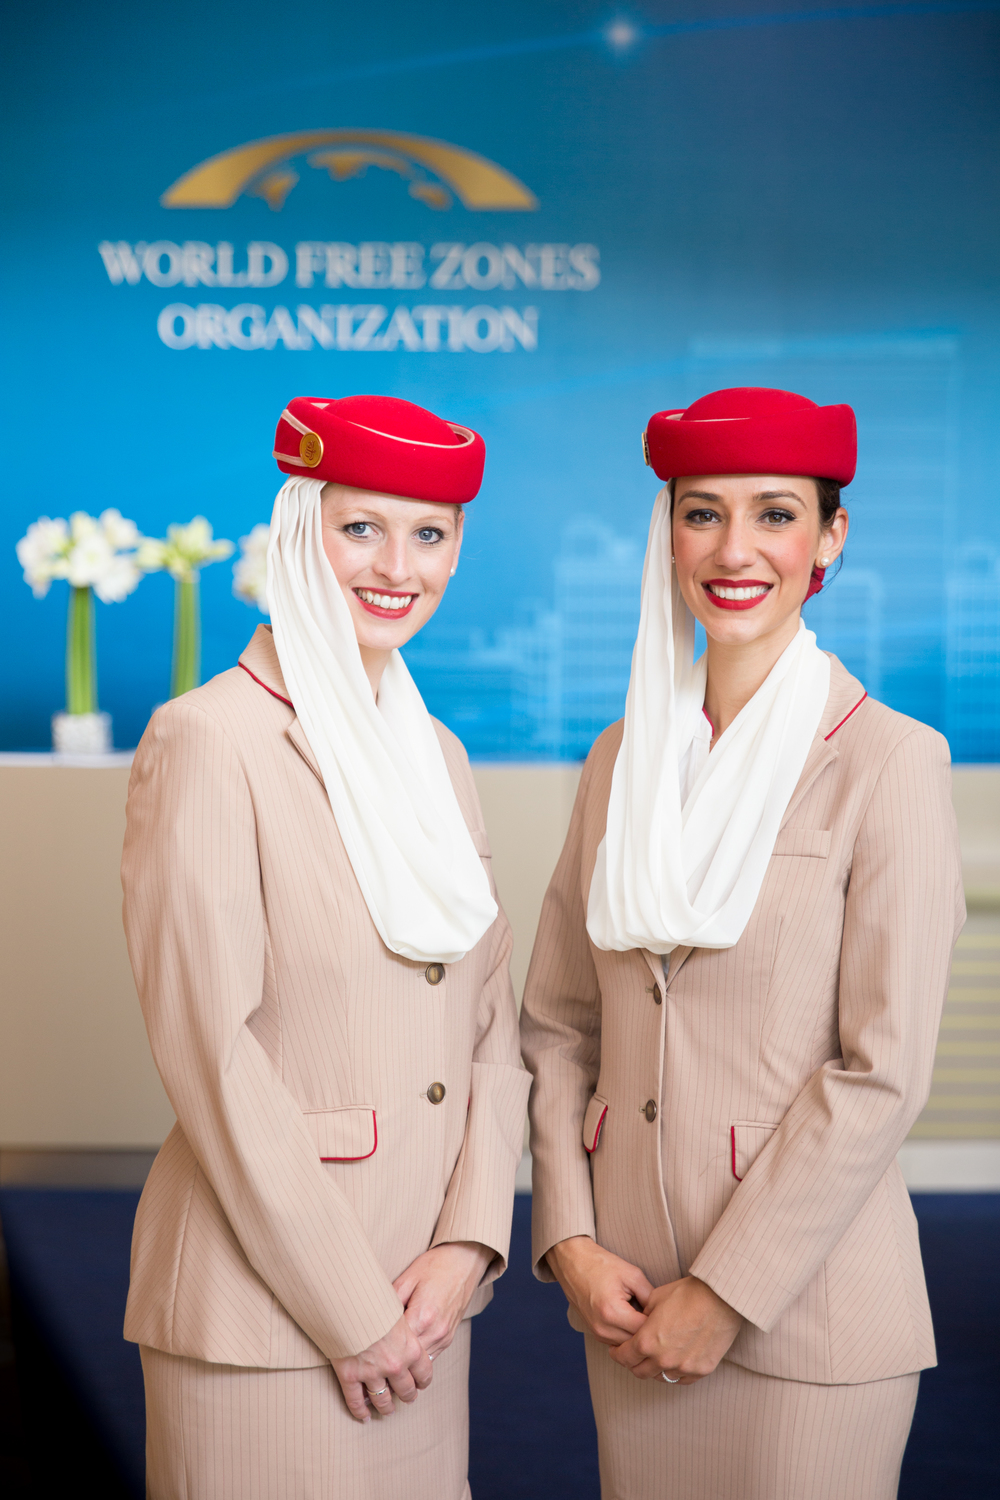 Coverage for World Free Zones organisation conference in Dubai. Two lovely Emirates Air hostesses pose for a photo.